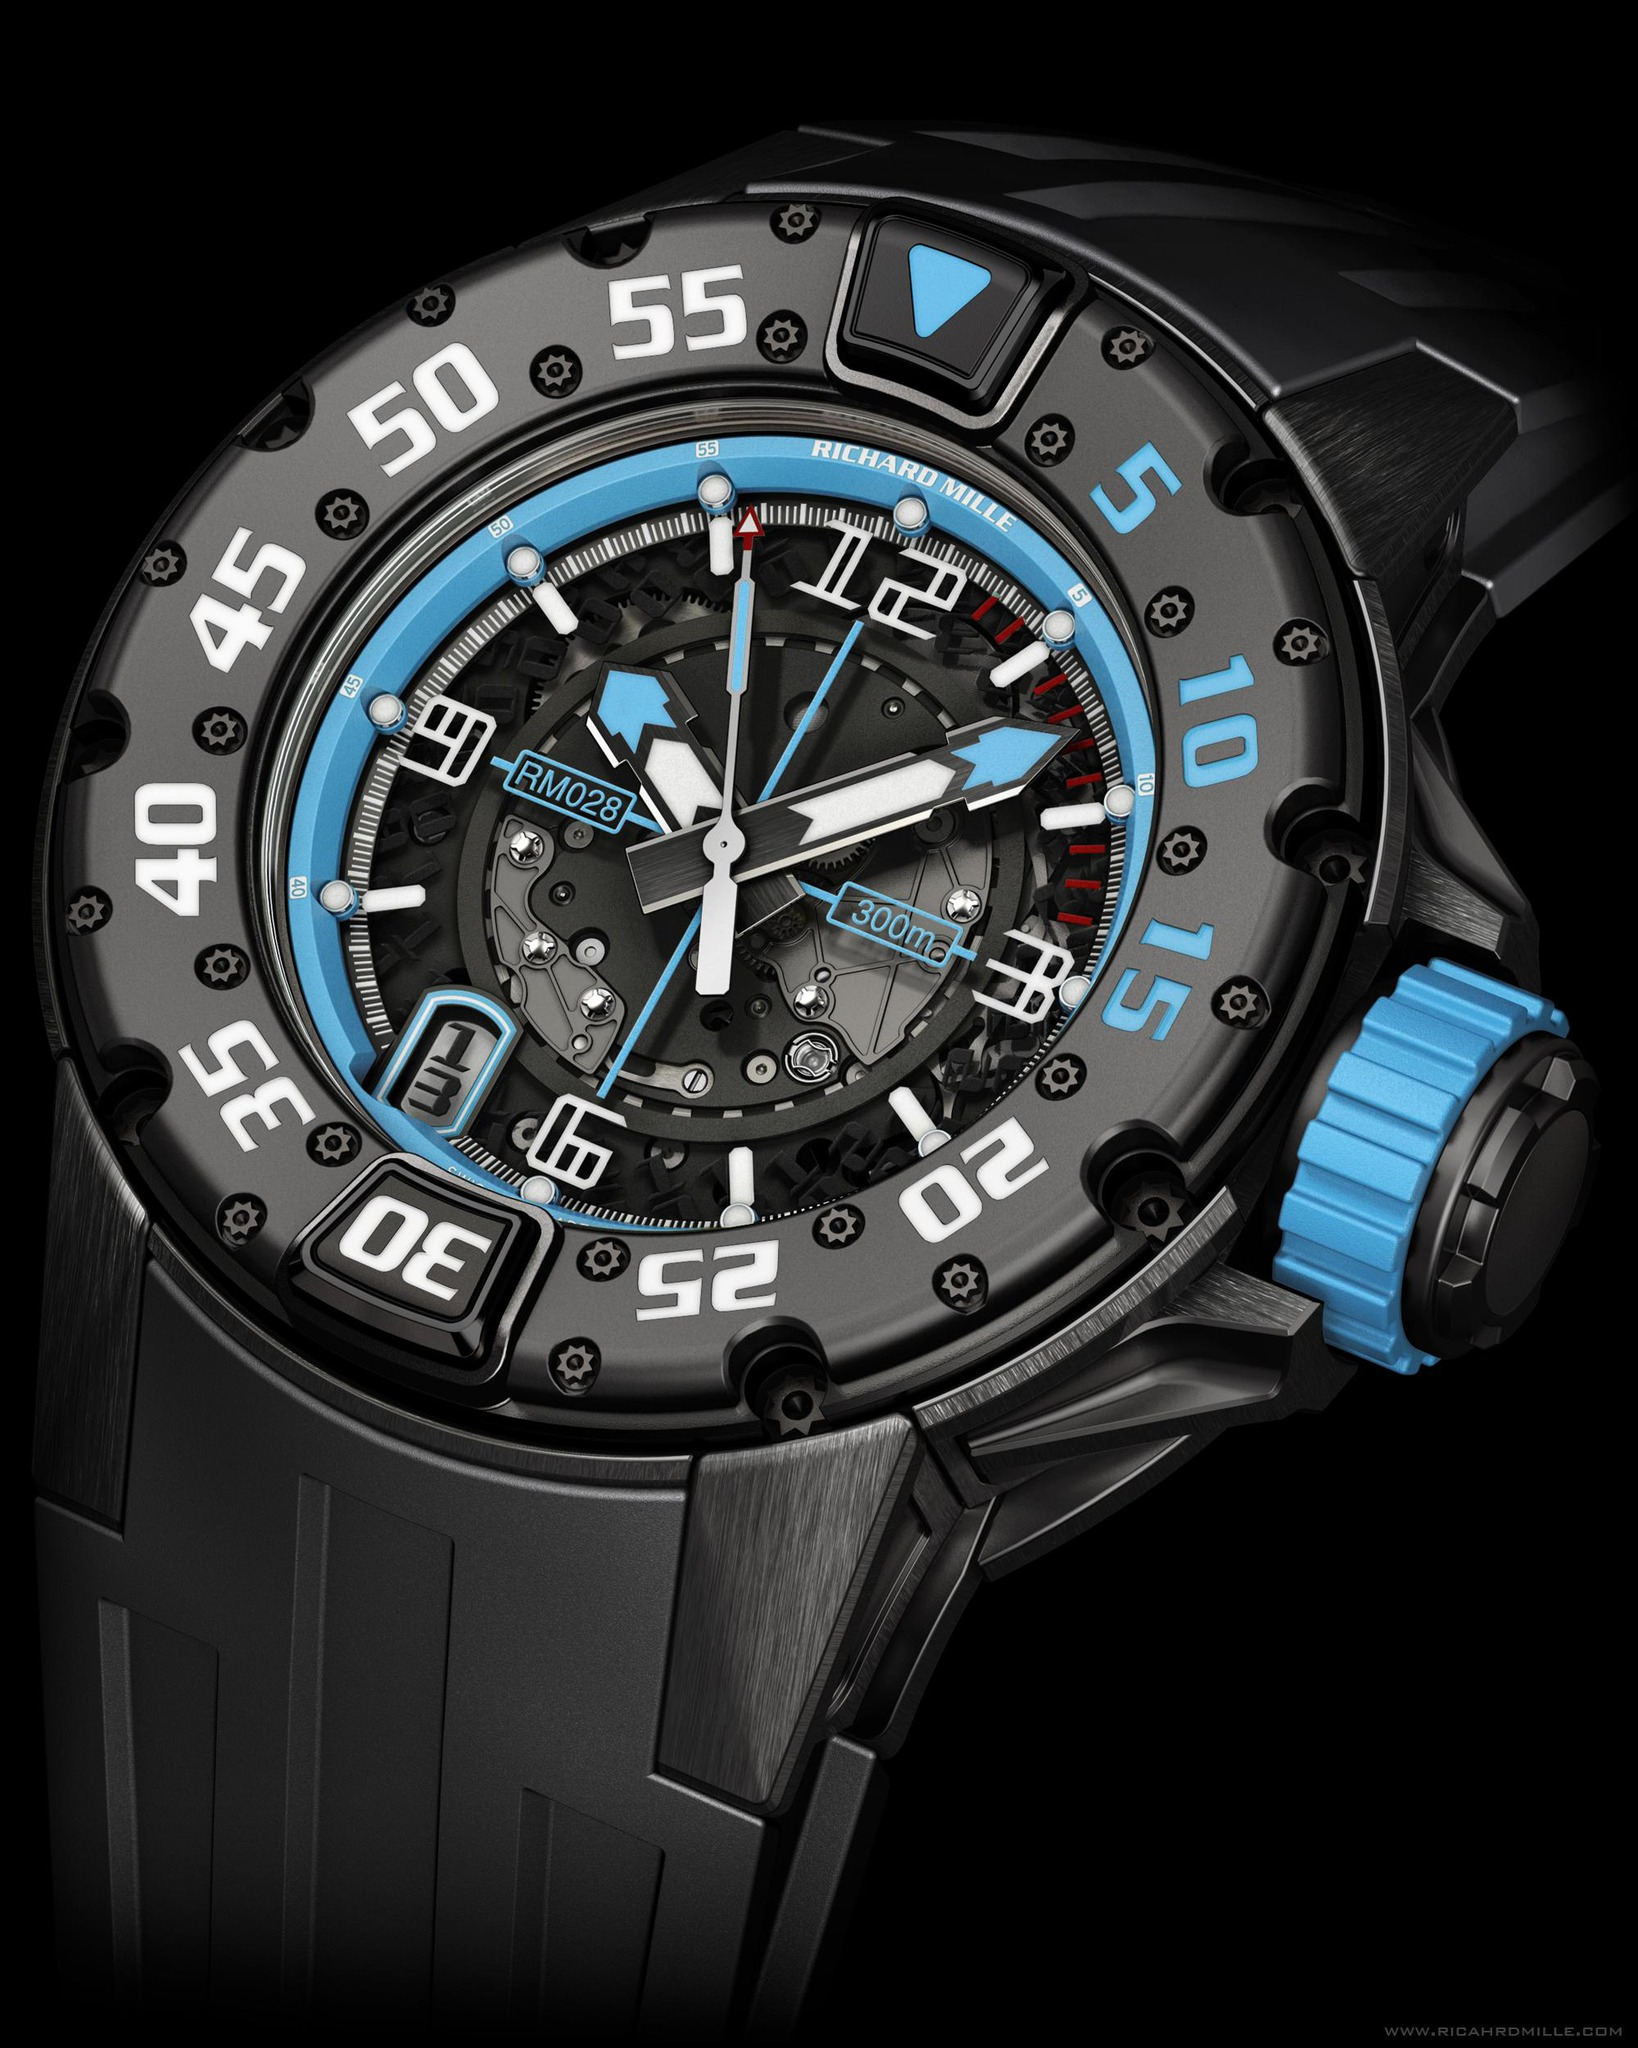 Replica Richard Mille RM 028 Diver Argentina Black Titanium Watch